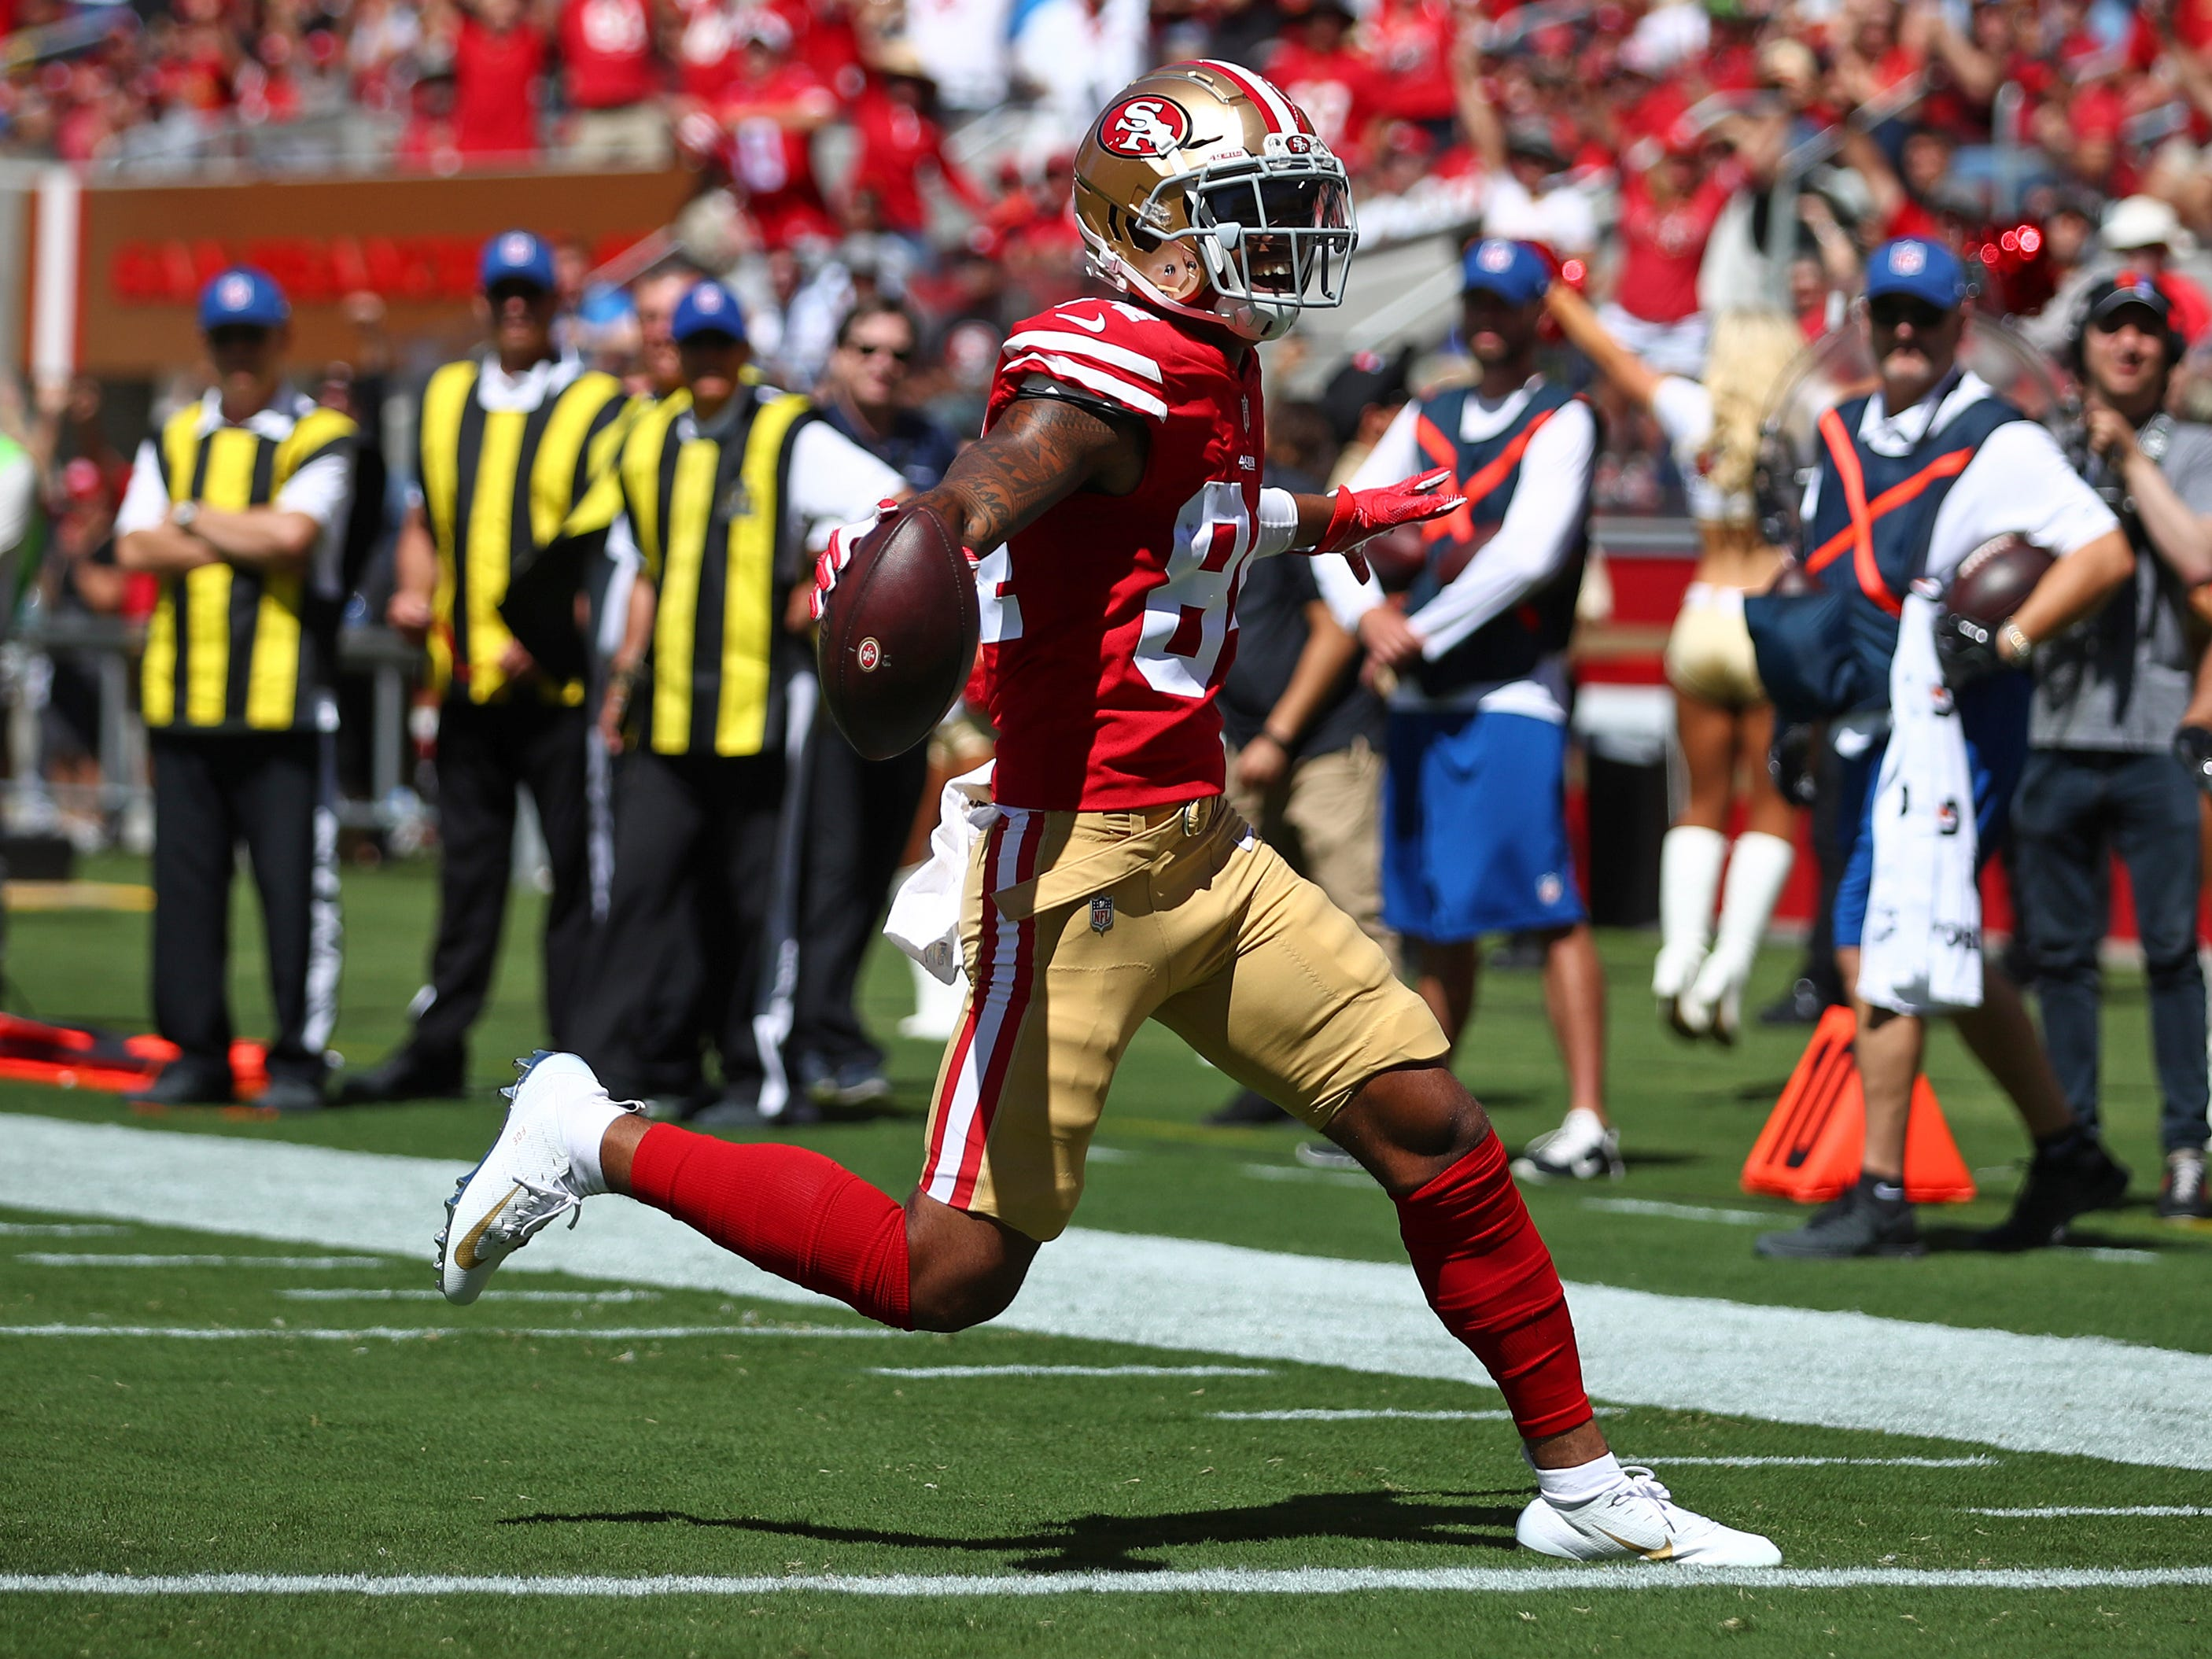 49ers wide receiver Kendrick Bourne carries the ball into the end zone for a touchdown during the first half on Sunday, Sept. 16, 2018, in Santa Clara, Calif.